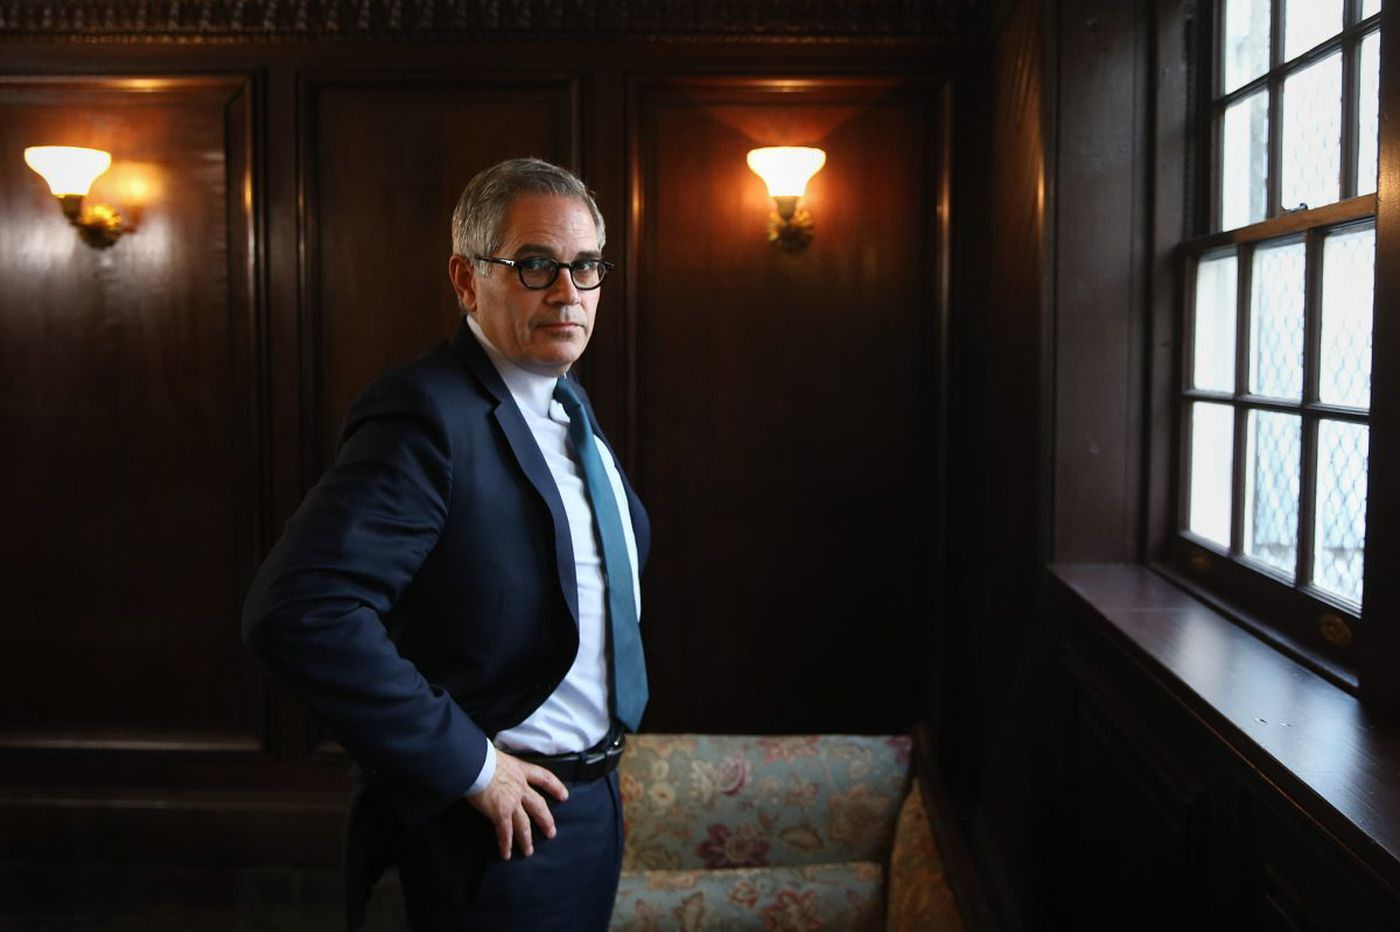 DA-elect Krasner vowed to change the system. First he'll have to change the office